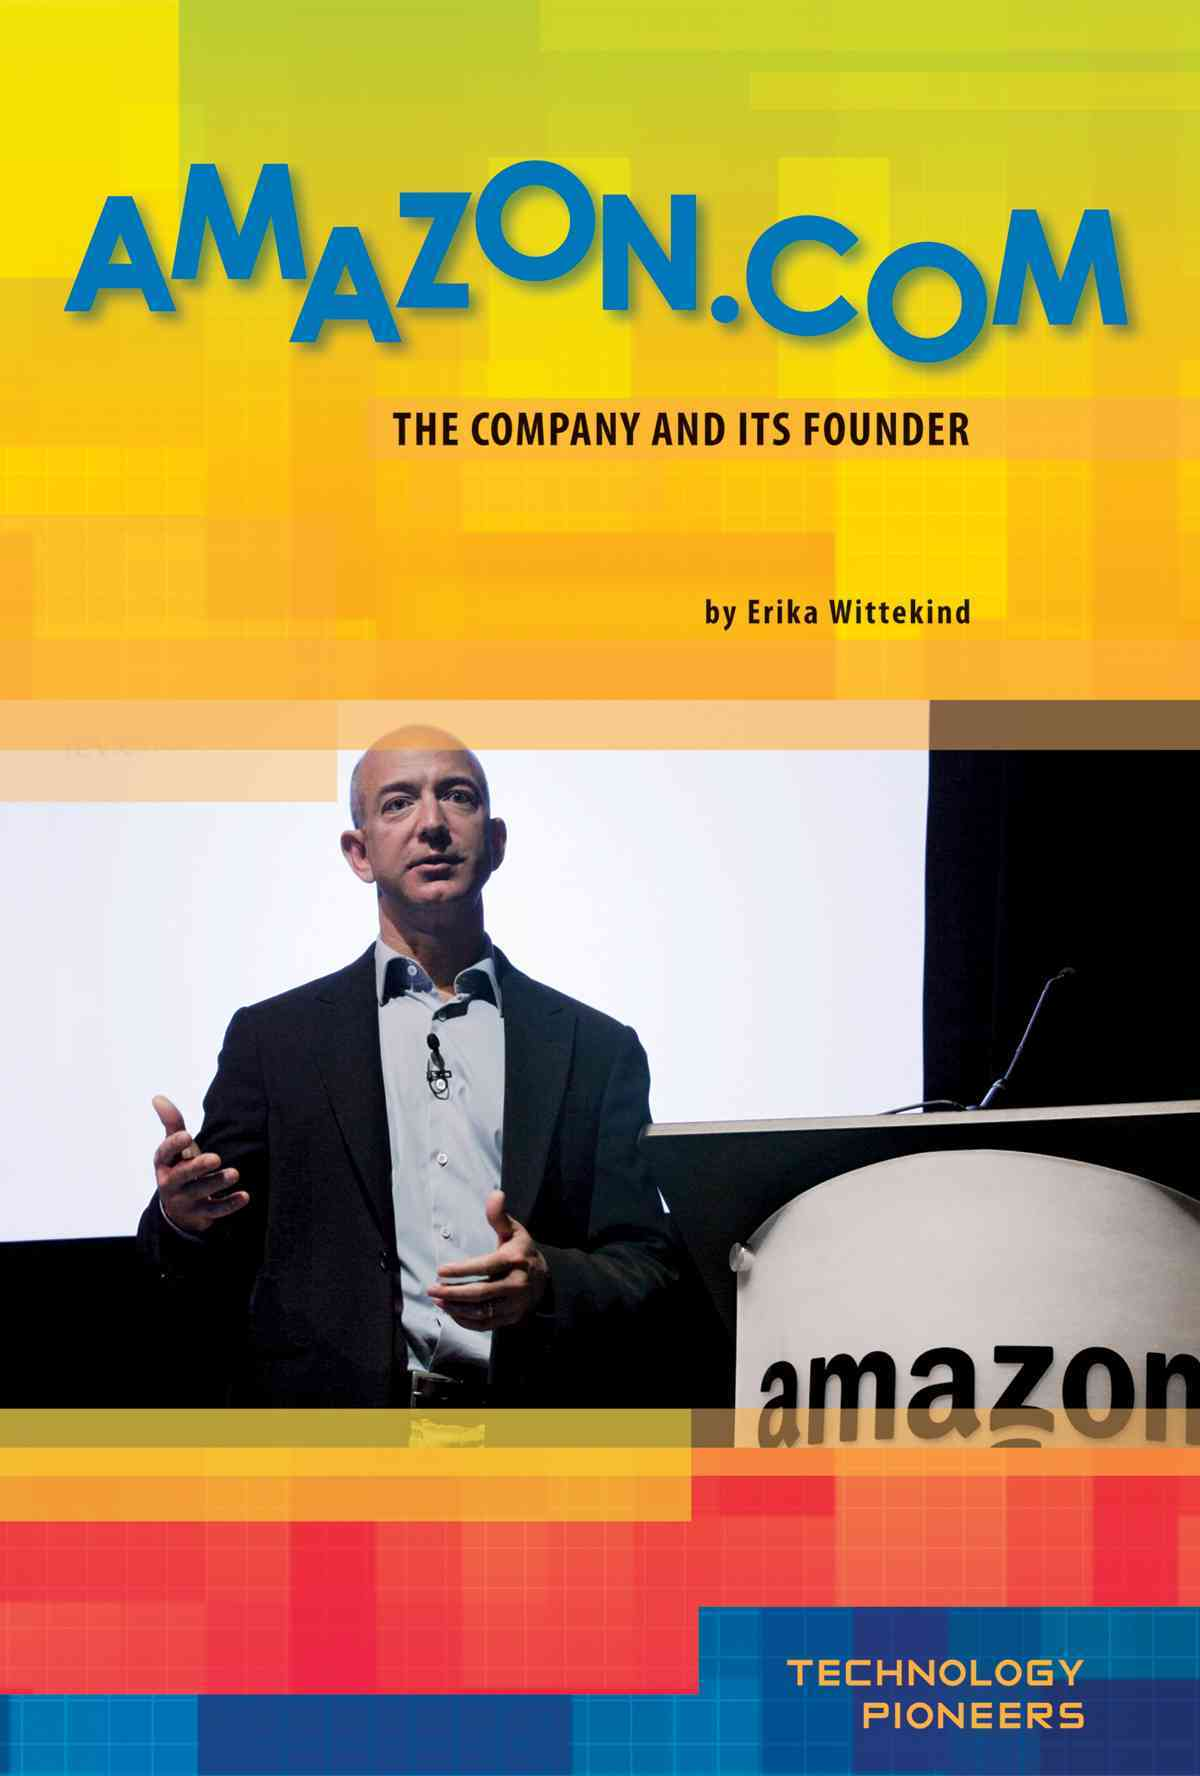 Amazon.com: The Company and Its Founder (Hardcover)